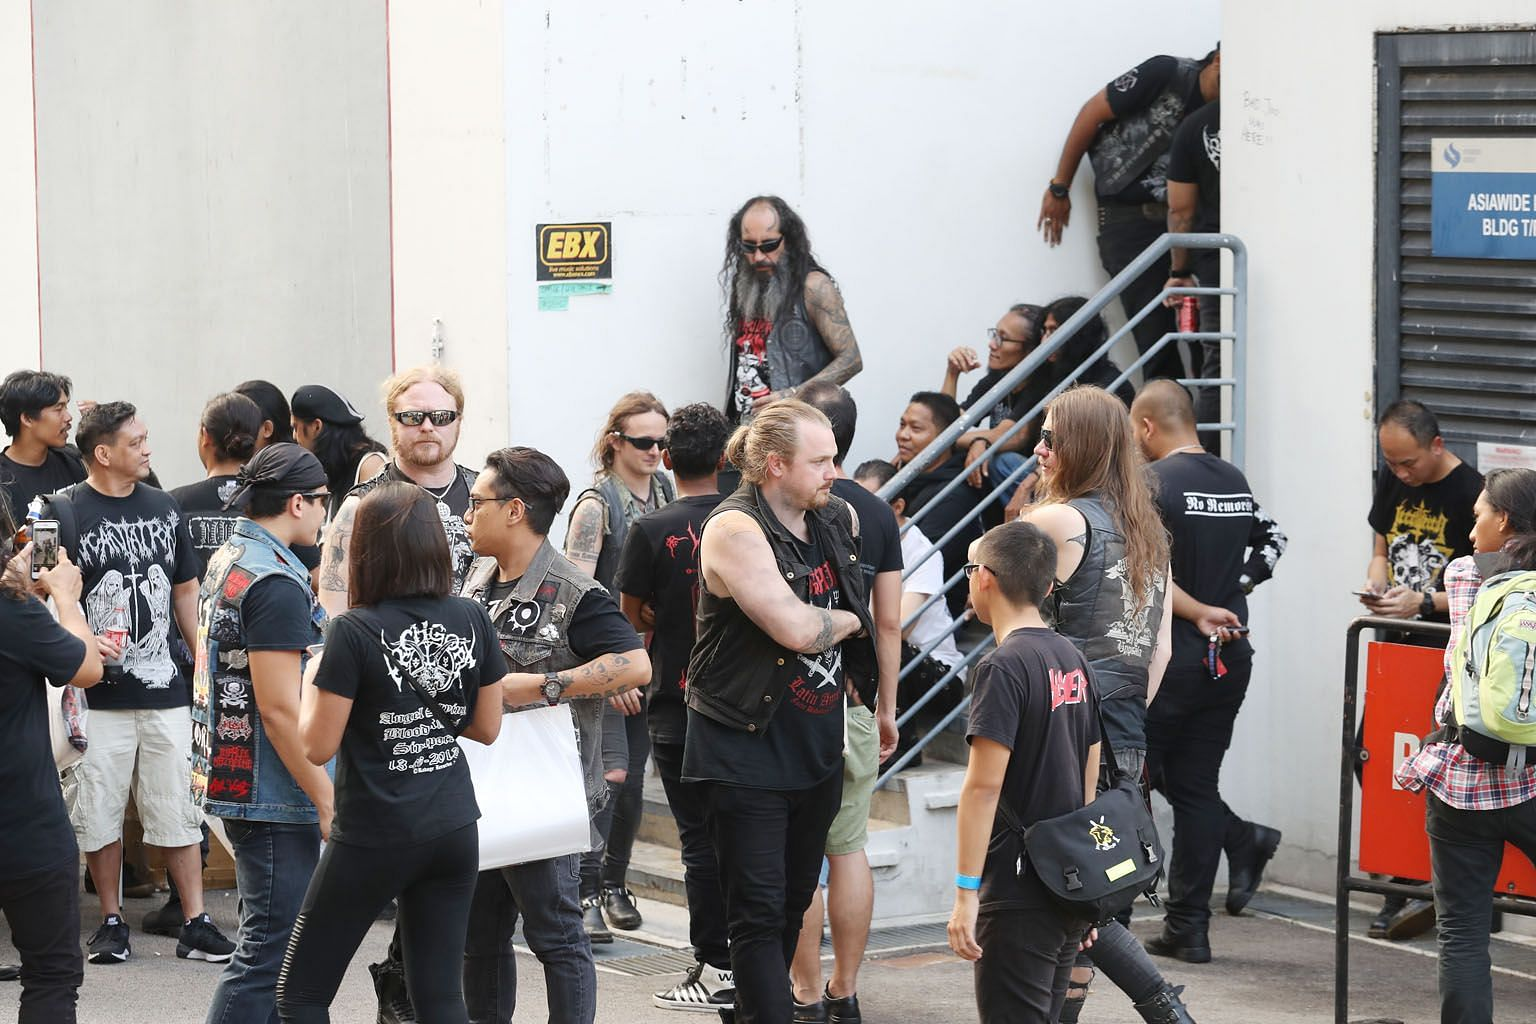 The Watain concert was scheduled for March 7 at EBX Live Space (above). It was cancelled after the Ministry of Home Affairs raised concerns about the band's history of denigrating religions and promoting violence.